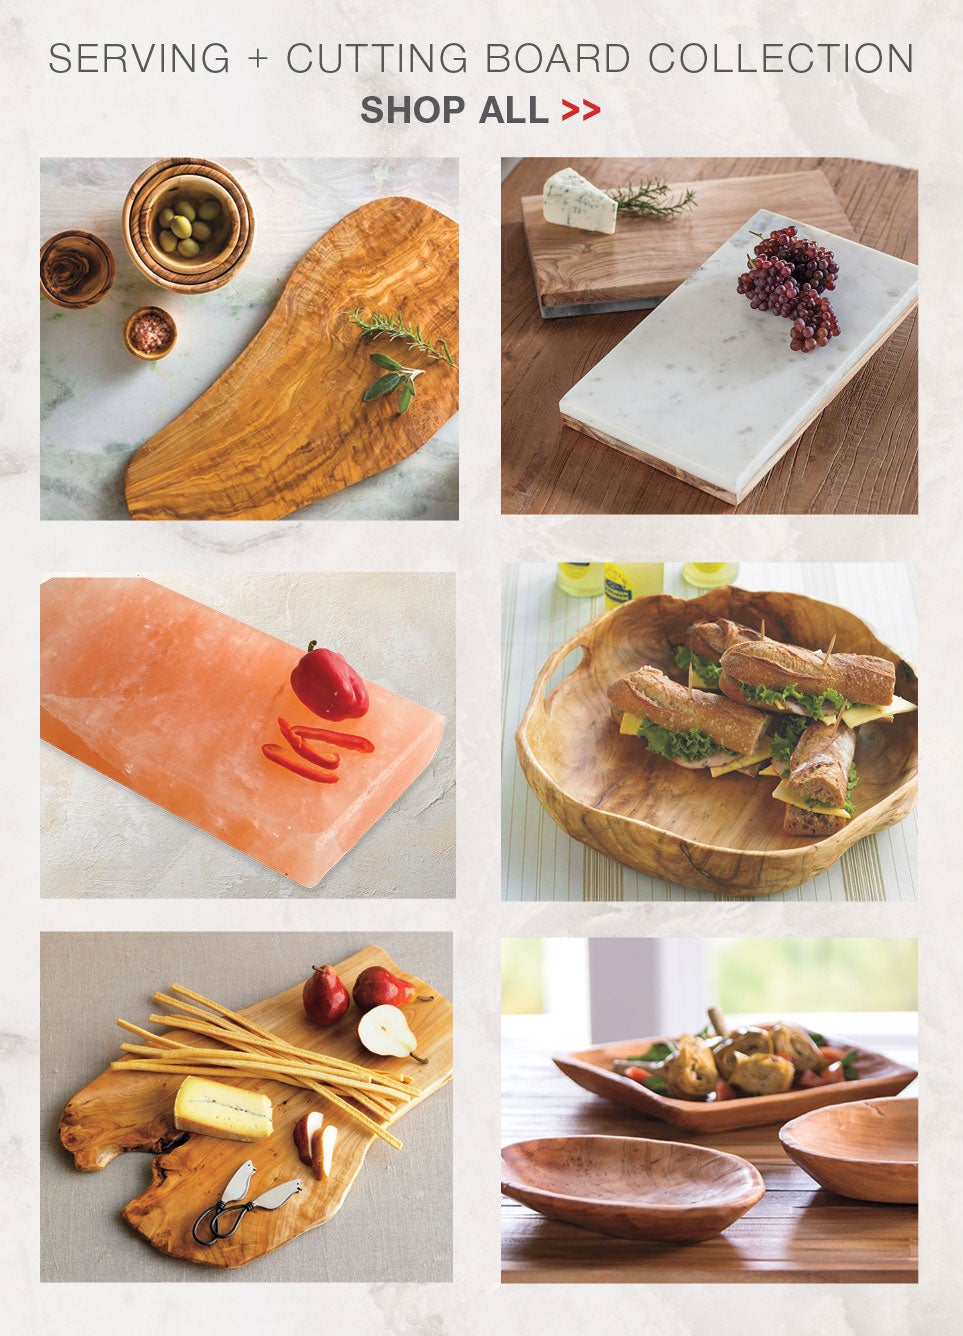 Serving + Cutting Board Collection - Shop All